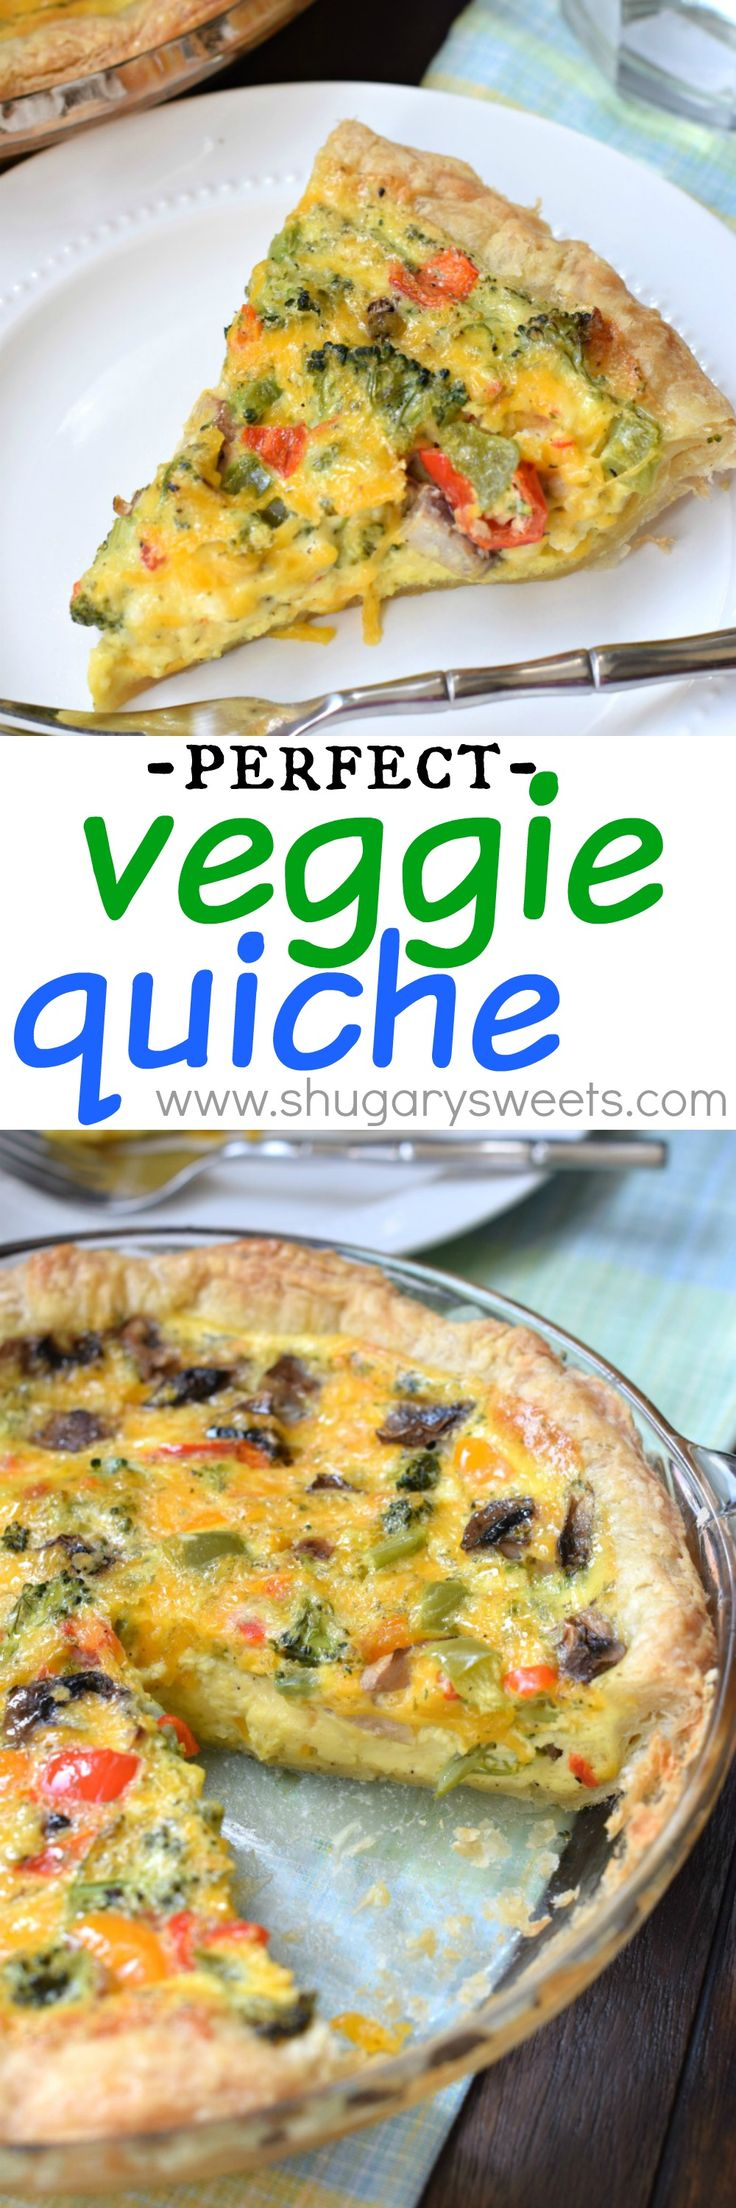 Veggie Quiche with puff pastry crust. Easy, delicious, perfect for breakfast, brunch or dinner! Sub your favorite veggies or meat!